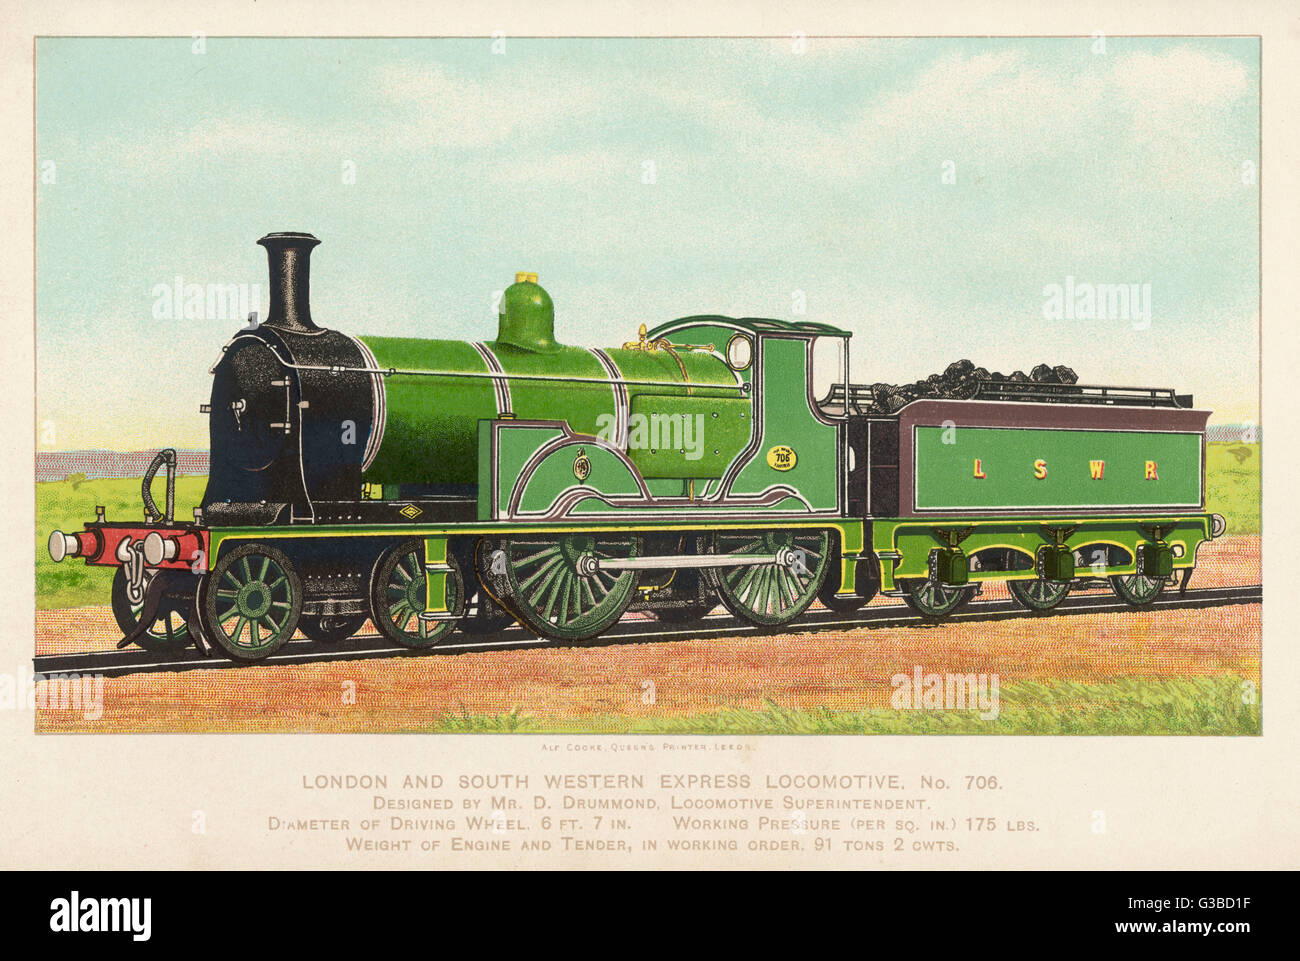 London and South Western  Railway locomotive no 706.        Date: 1899 - Stock Image